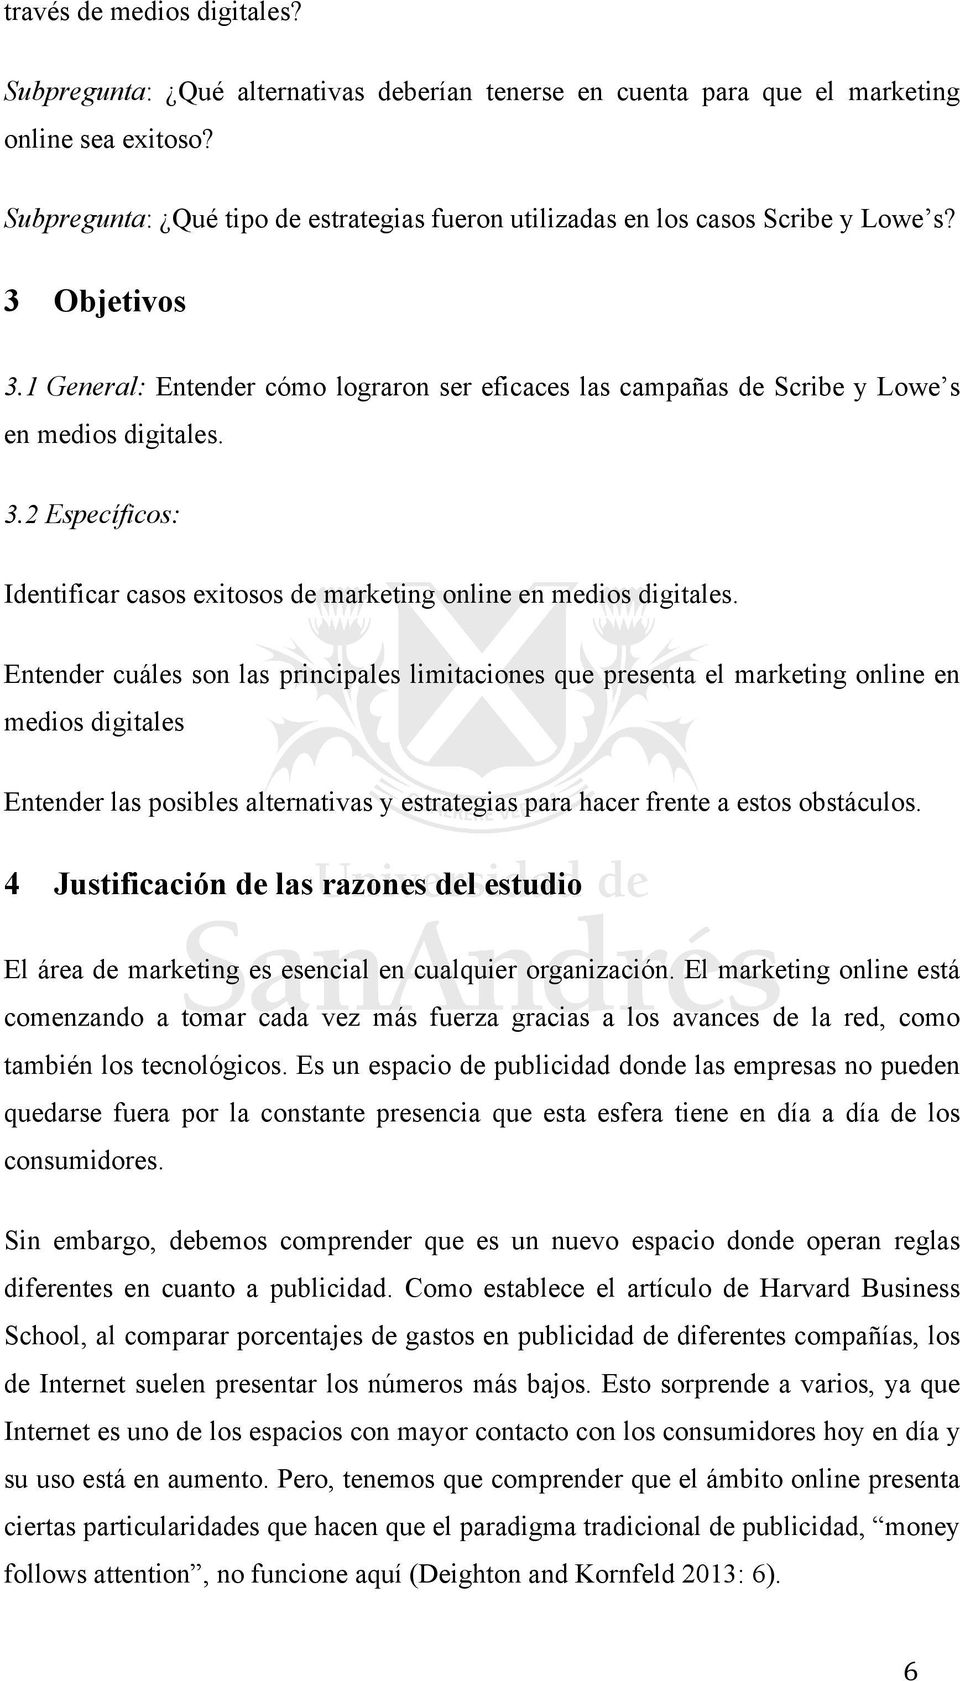 3.2 Específicos: Identificar casos exitosos de marketing online en medios digitales.